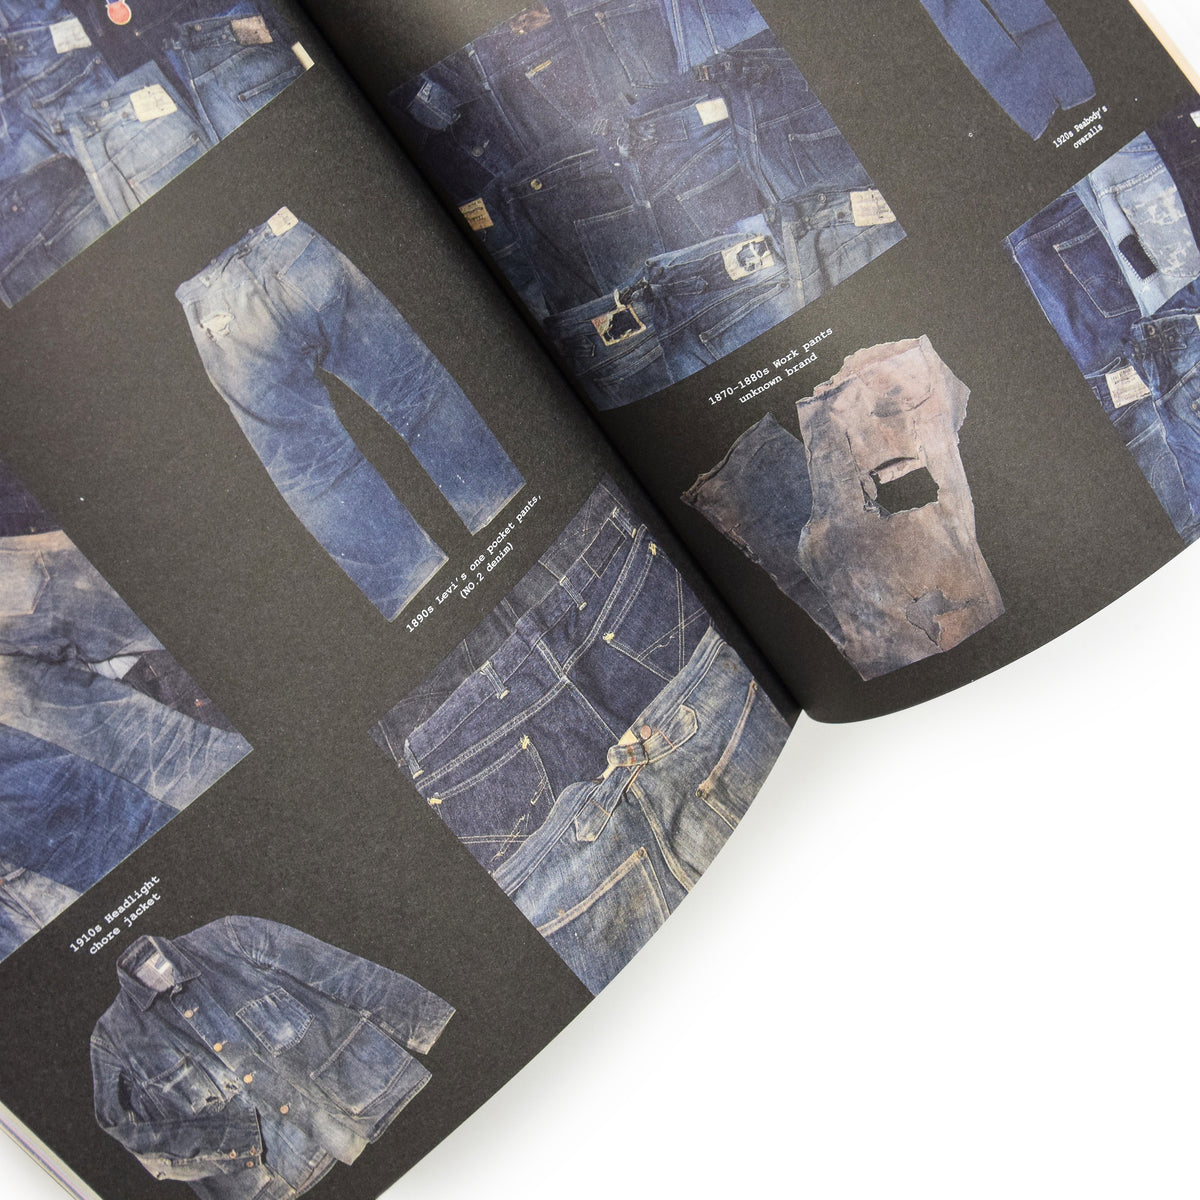 Avant Magazine Volume 1 Anthology Of American Workwear inside pages